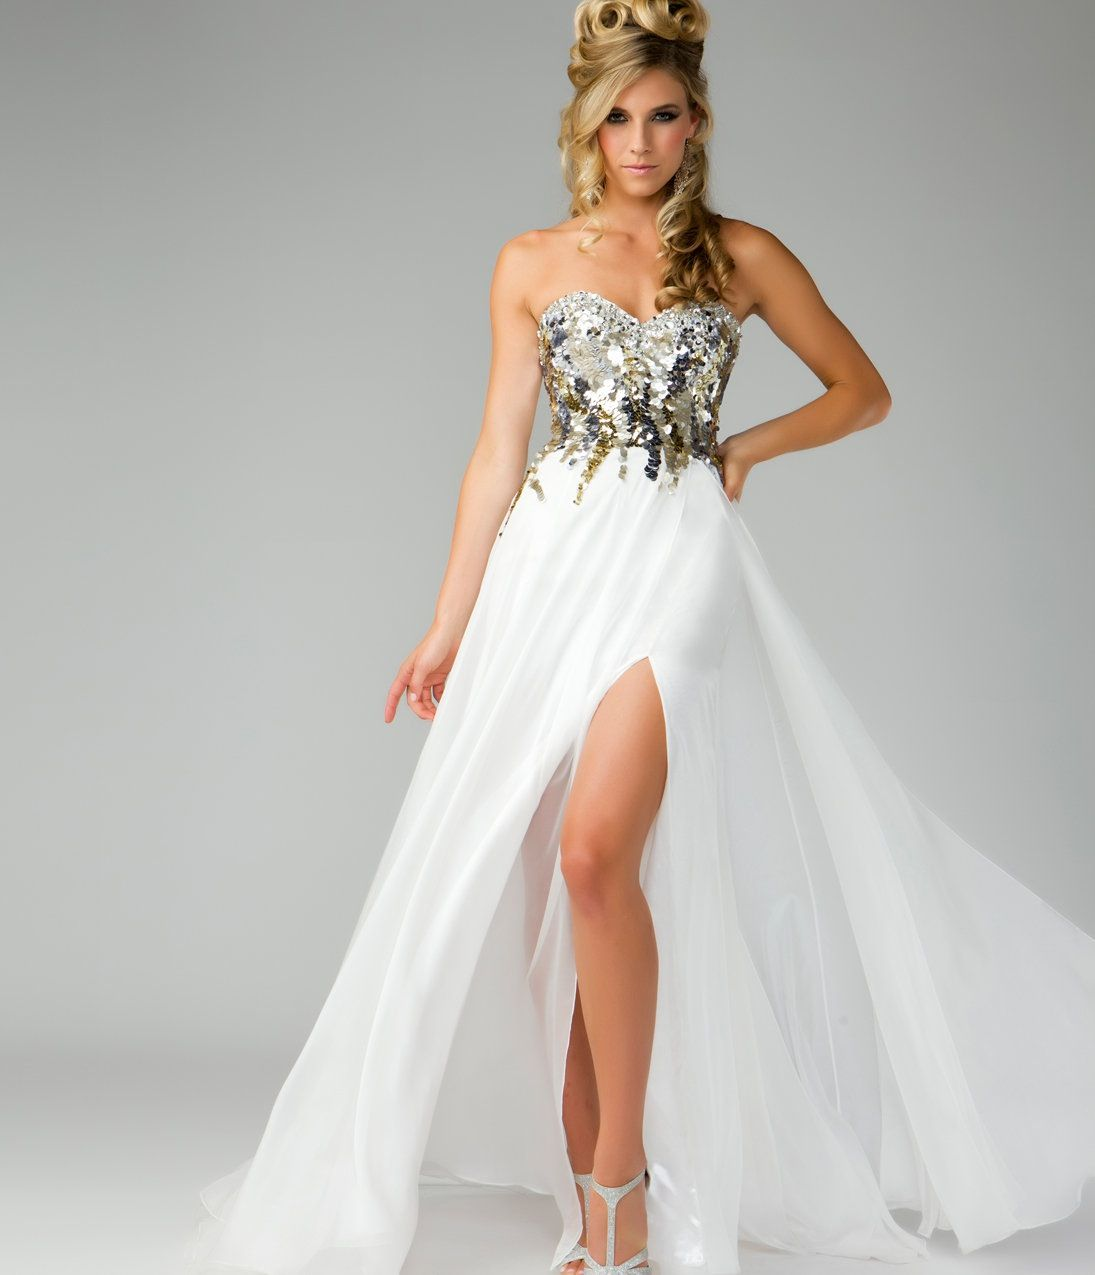 I love the white homecomingpromuc pinterest the oujays the